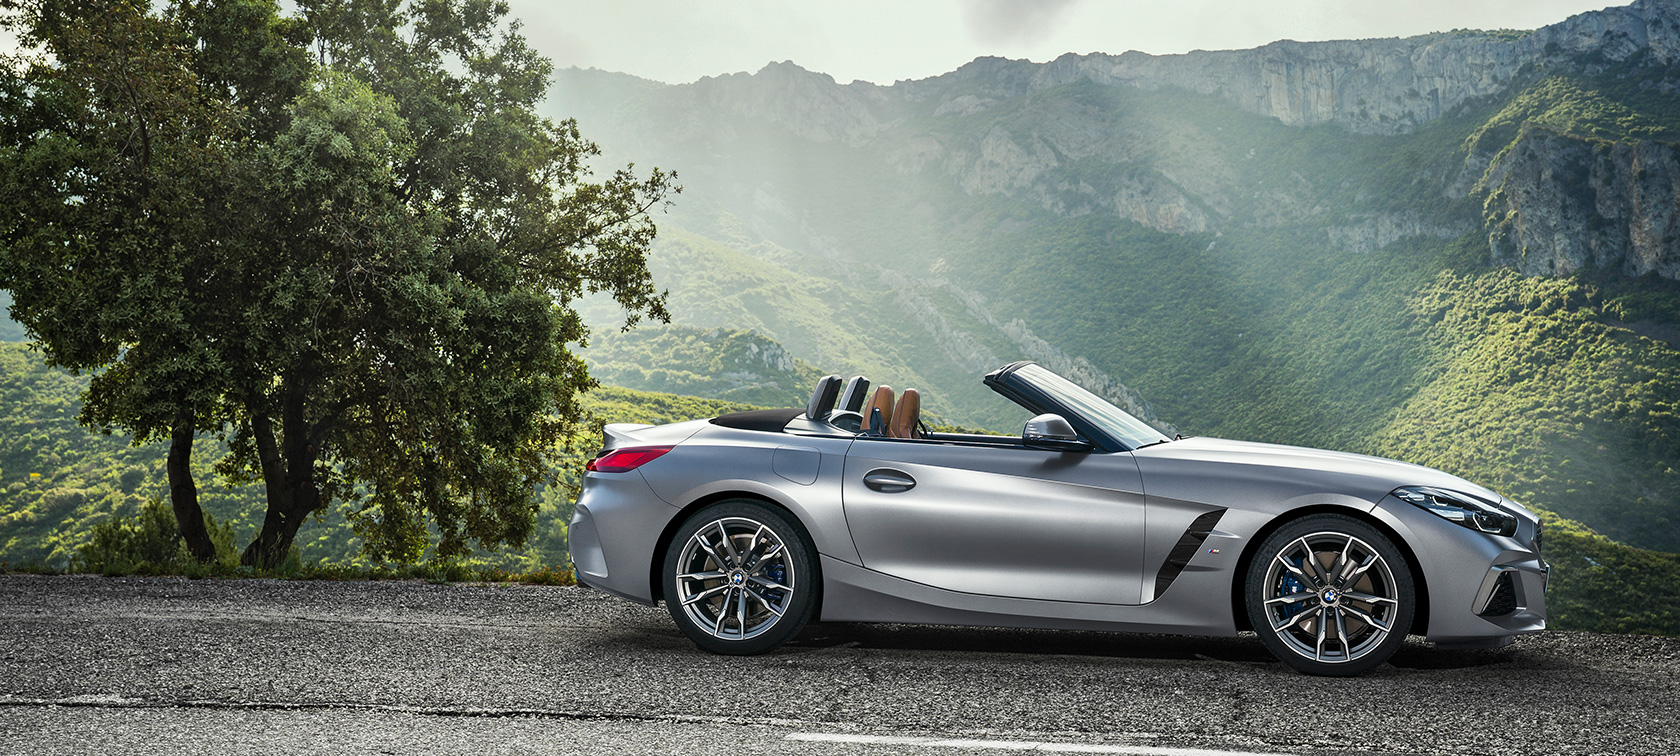 BMW Z4 M40i G29 2019 Cabrio BMW Individual Frozen Grey metallic parking side view